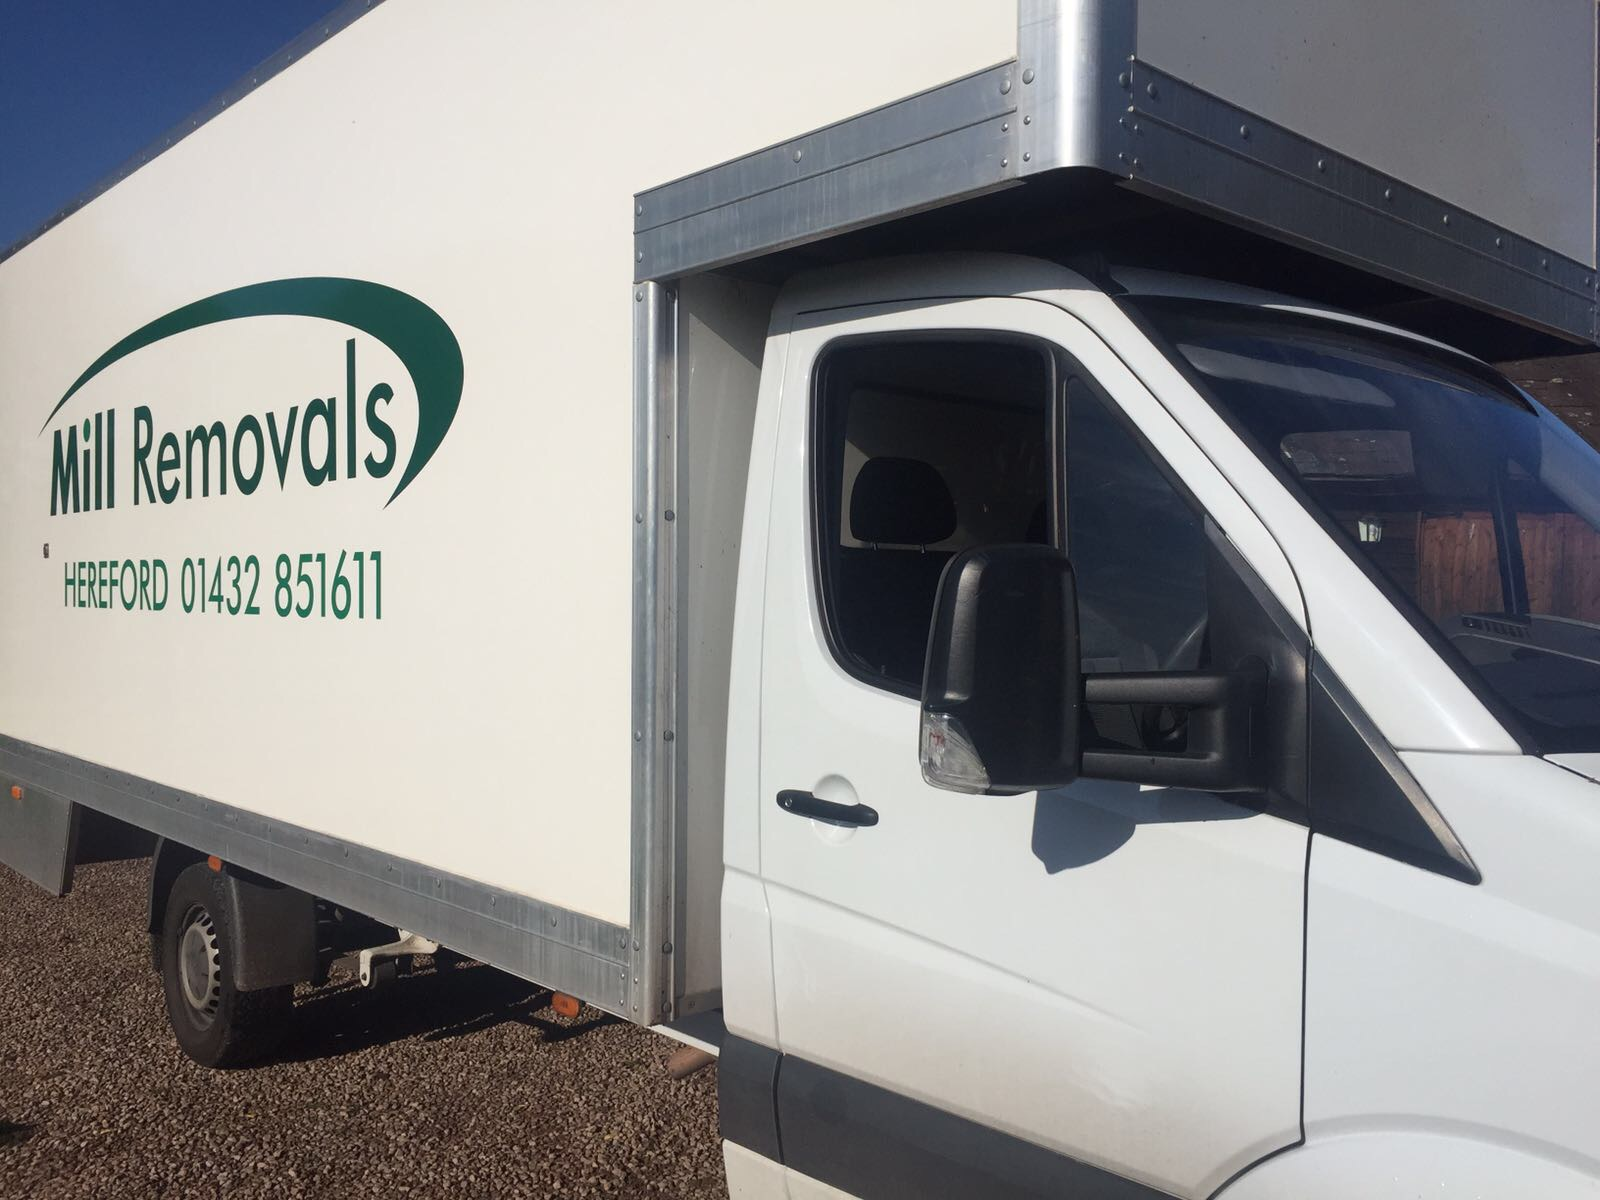 Mill Removals Hereford Vehicle Fleet